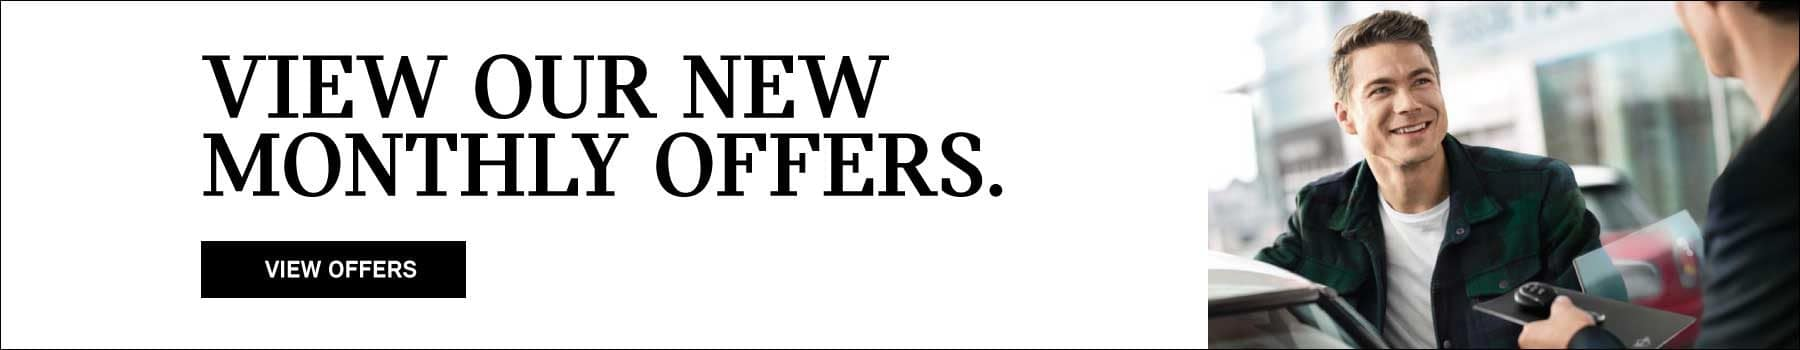 VIEW OUR NEW MONTHLY OFFERS.